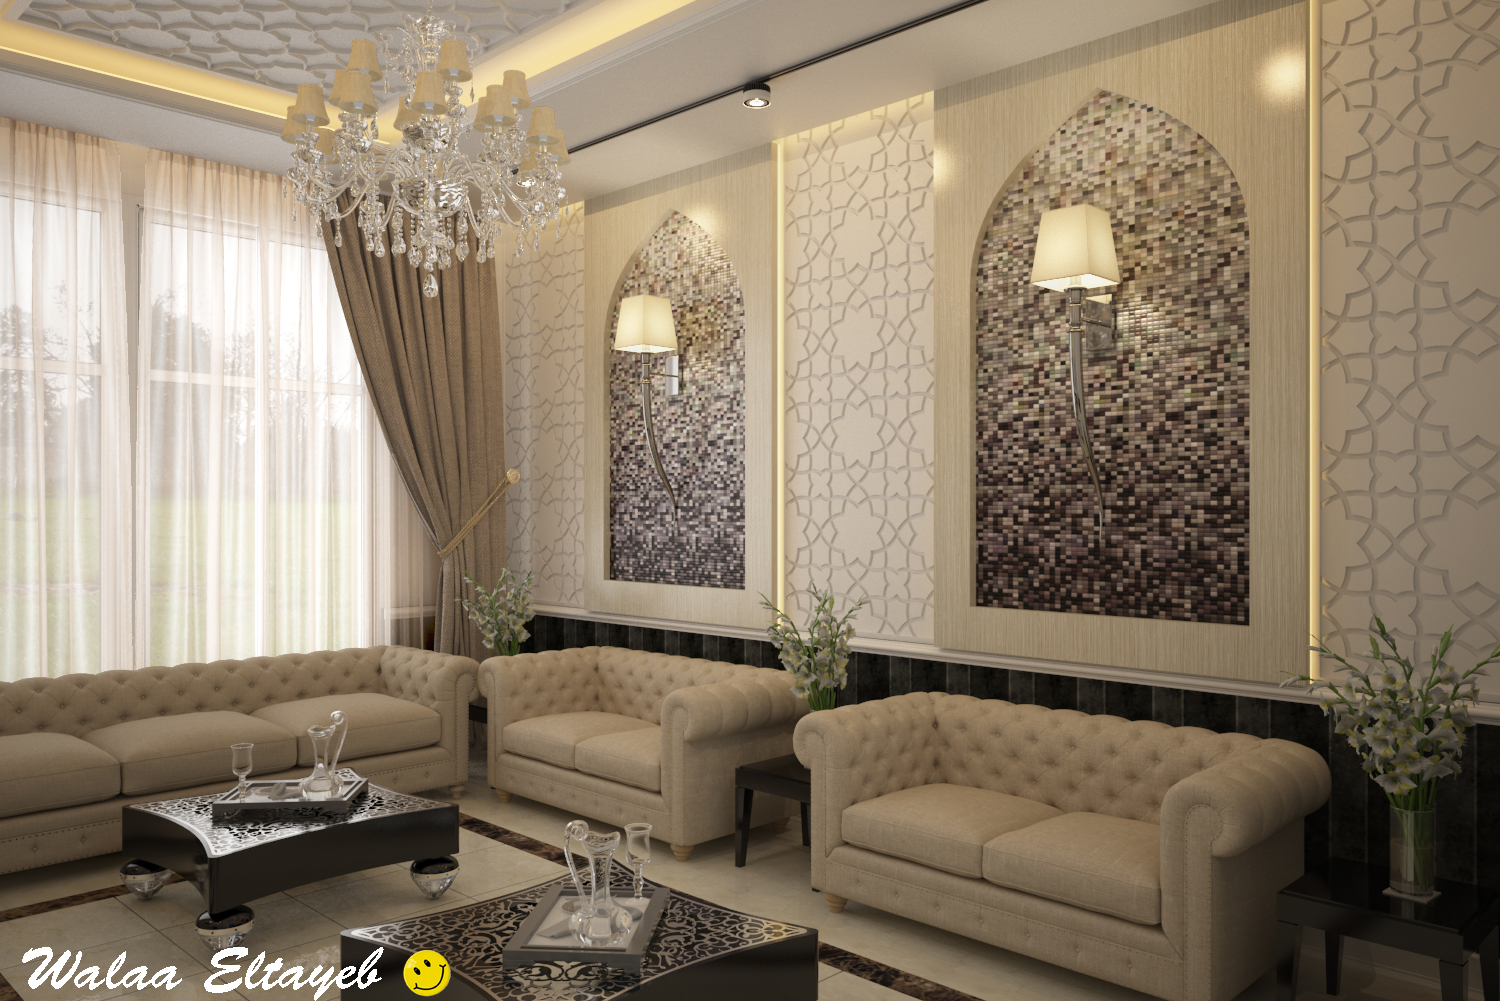 Salon interance hall walaadesigns - Interior design pic ...